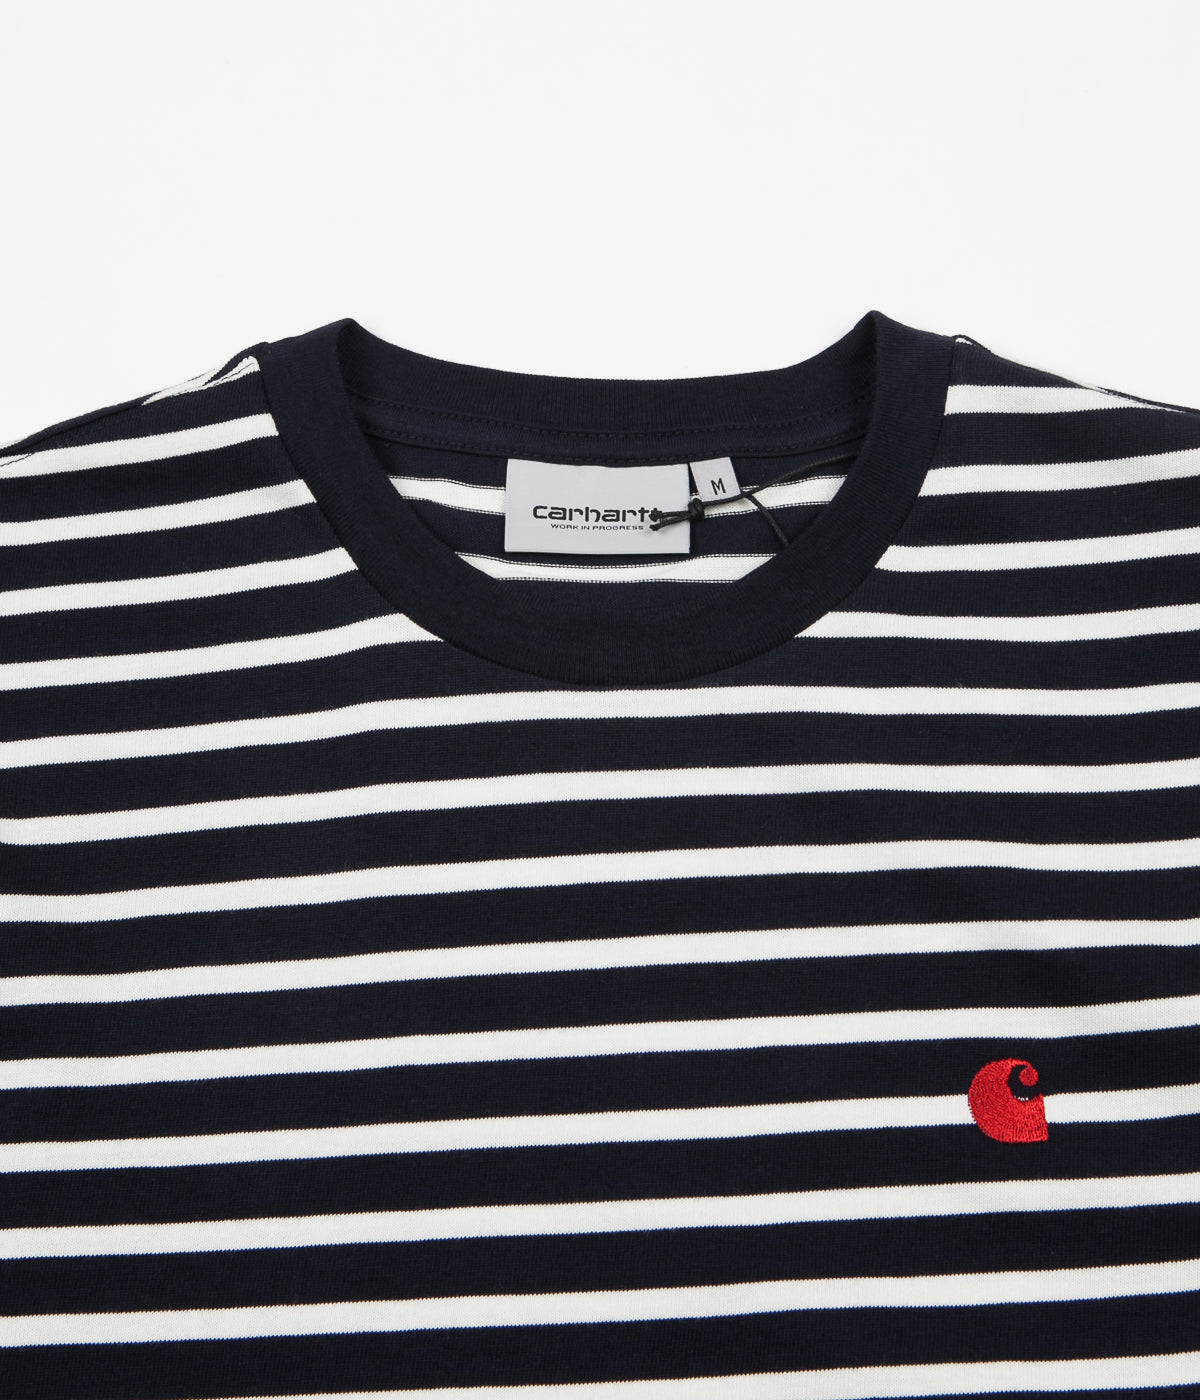 Carhartt Robie T-Shirt - Dark Navy / Wax / Blast Red